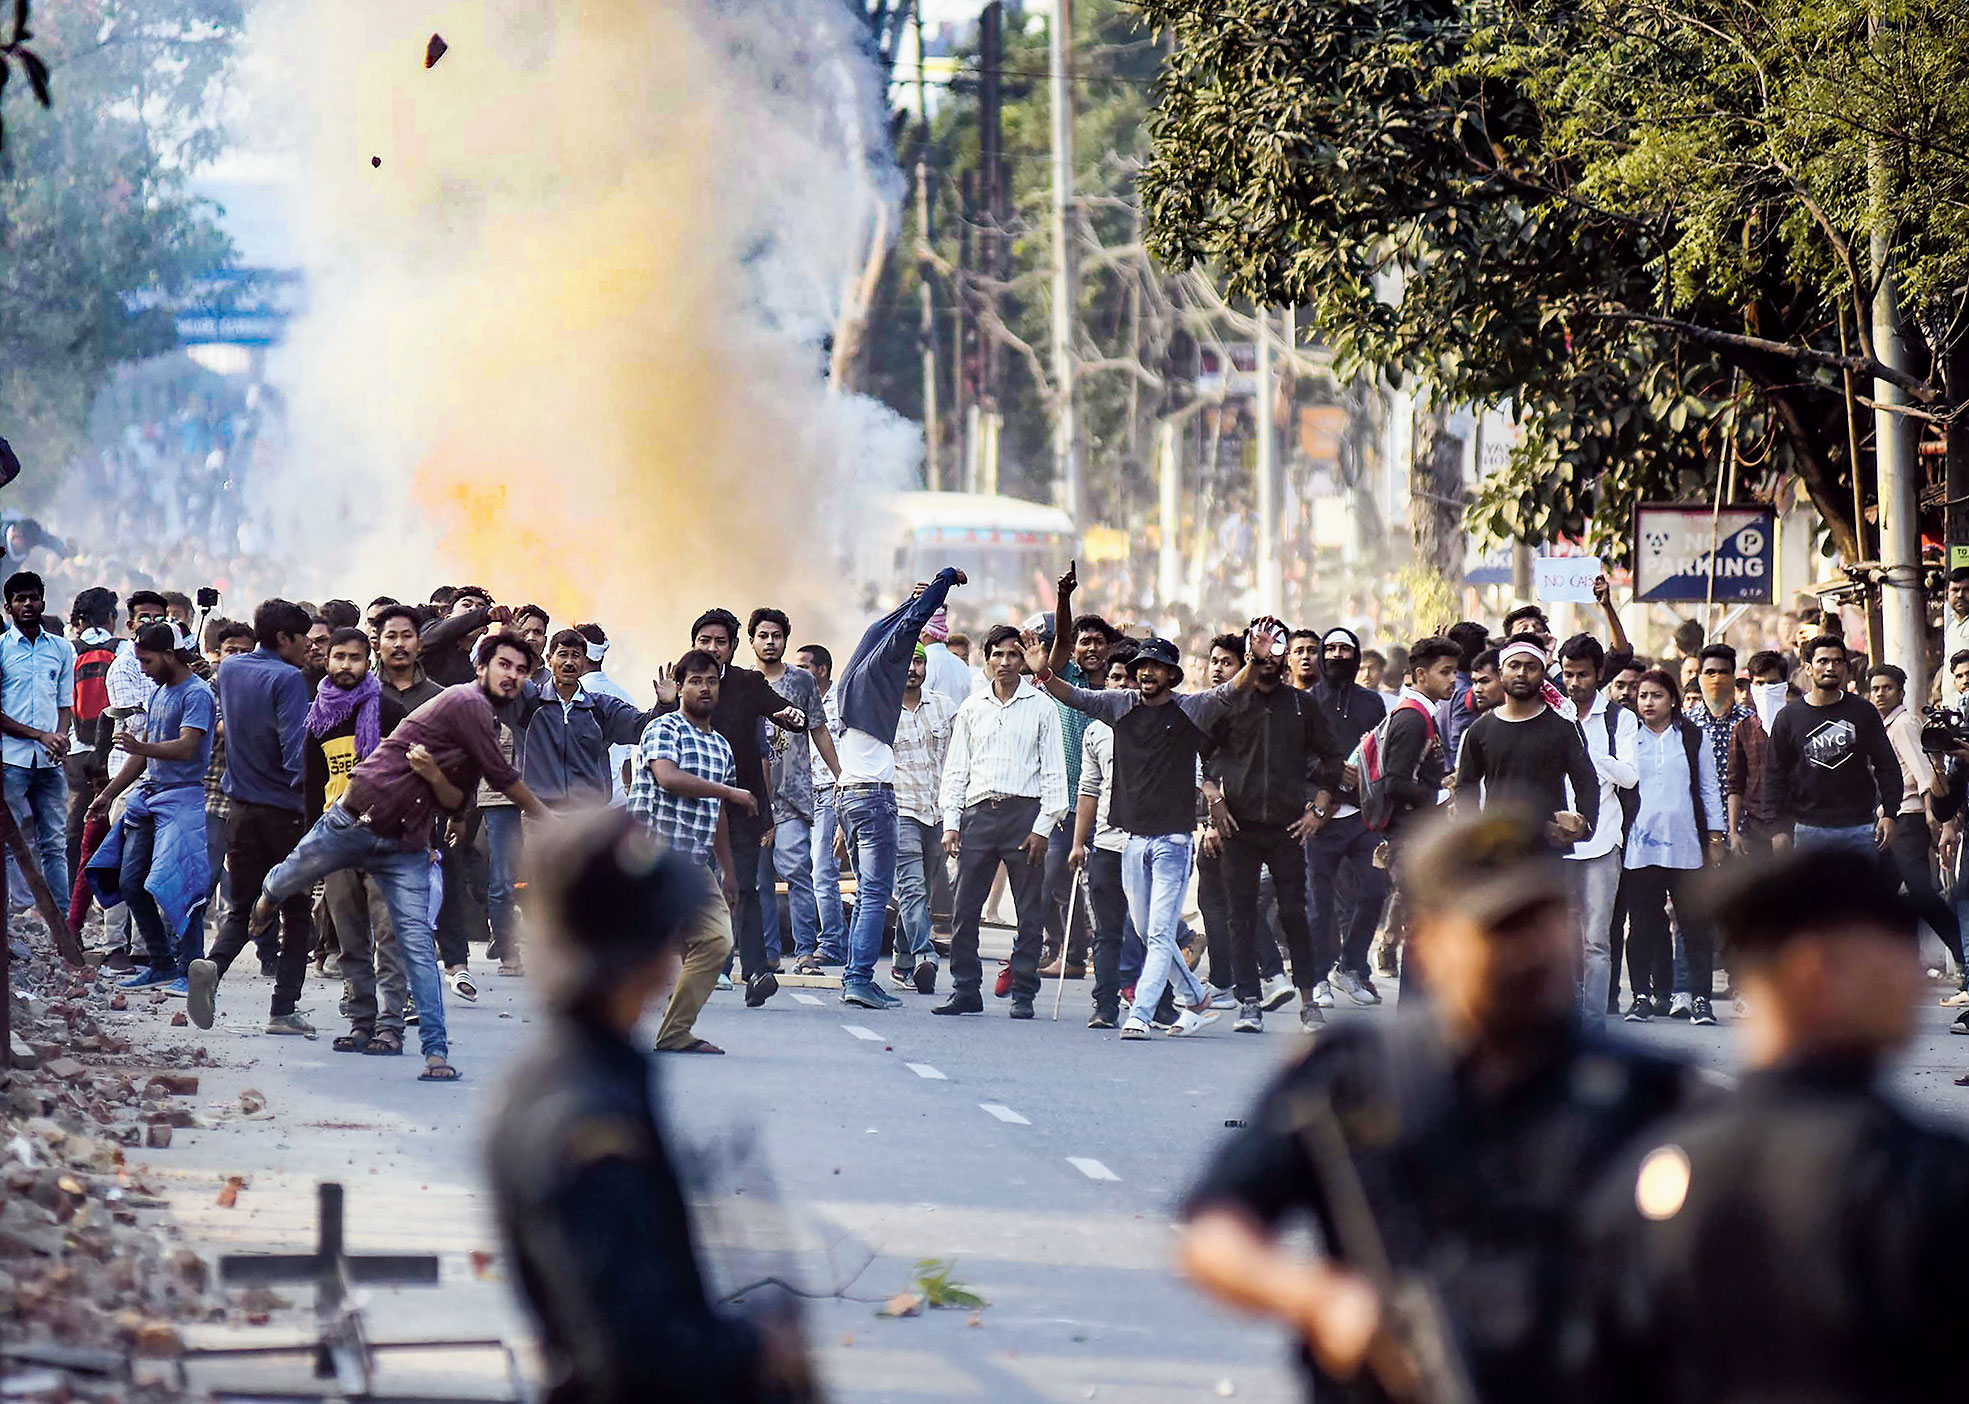 Protesters throw stones at the police in Guwahati on Wednesday during a march against the Citizenship Bill.